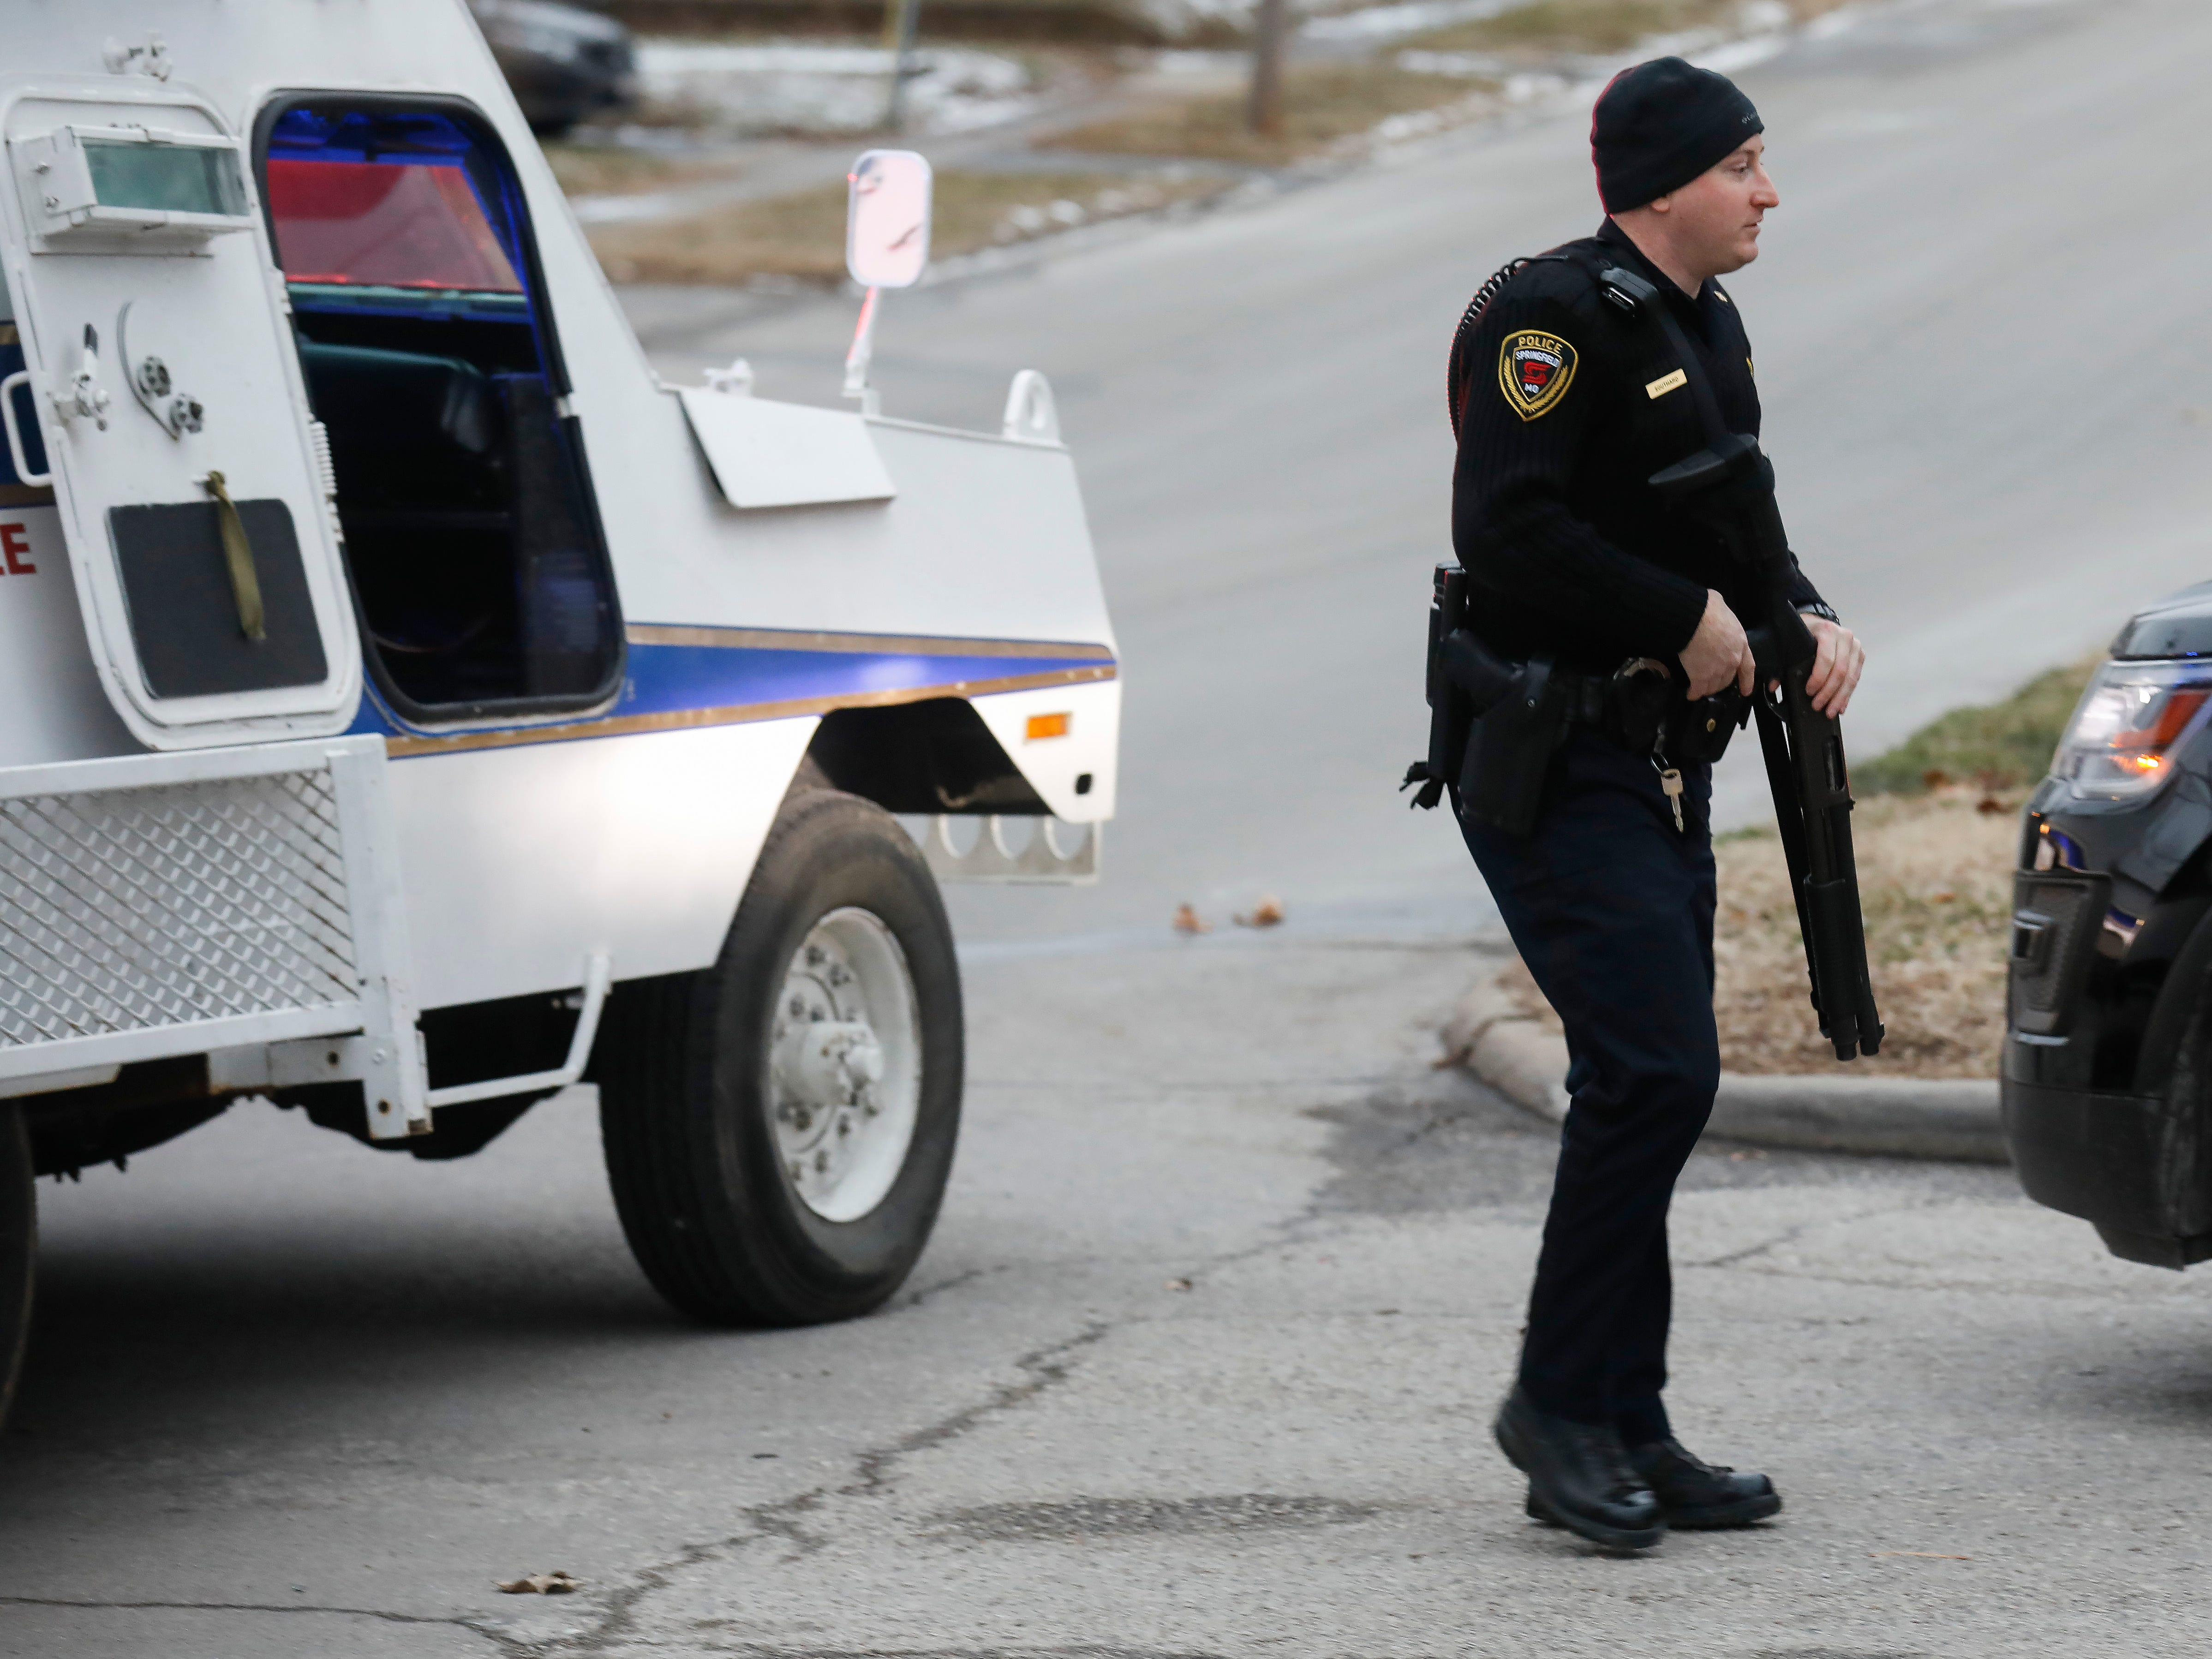 Police were involved in a standoff on the 1200 block of West Atlantic Street on Thursday, Jan. 31, 2019. The suspect surrendered without incident.